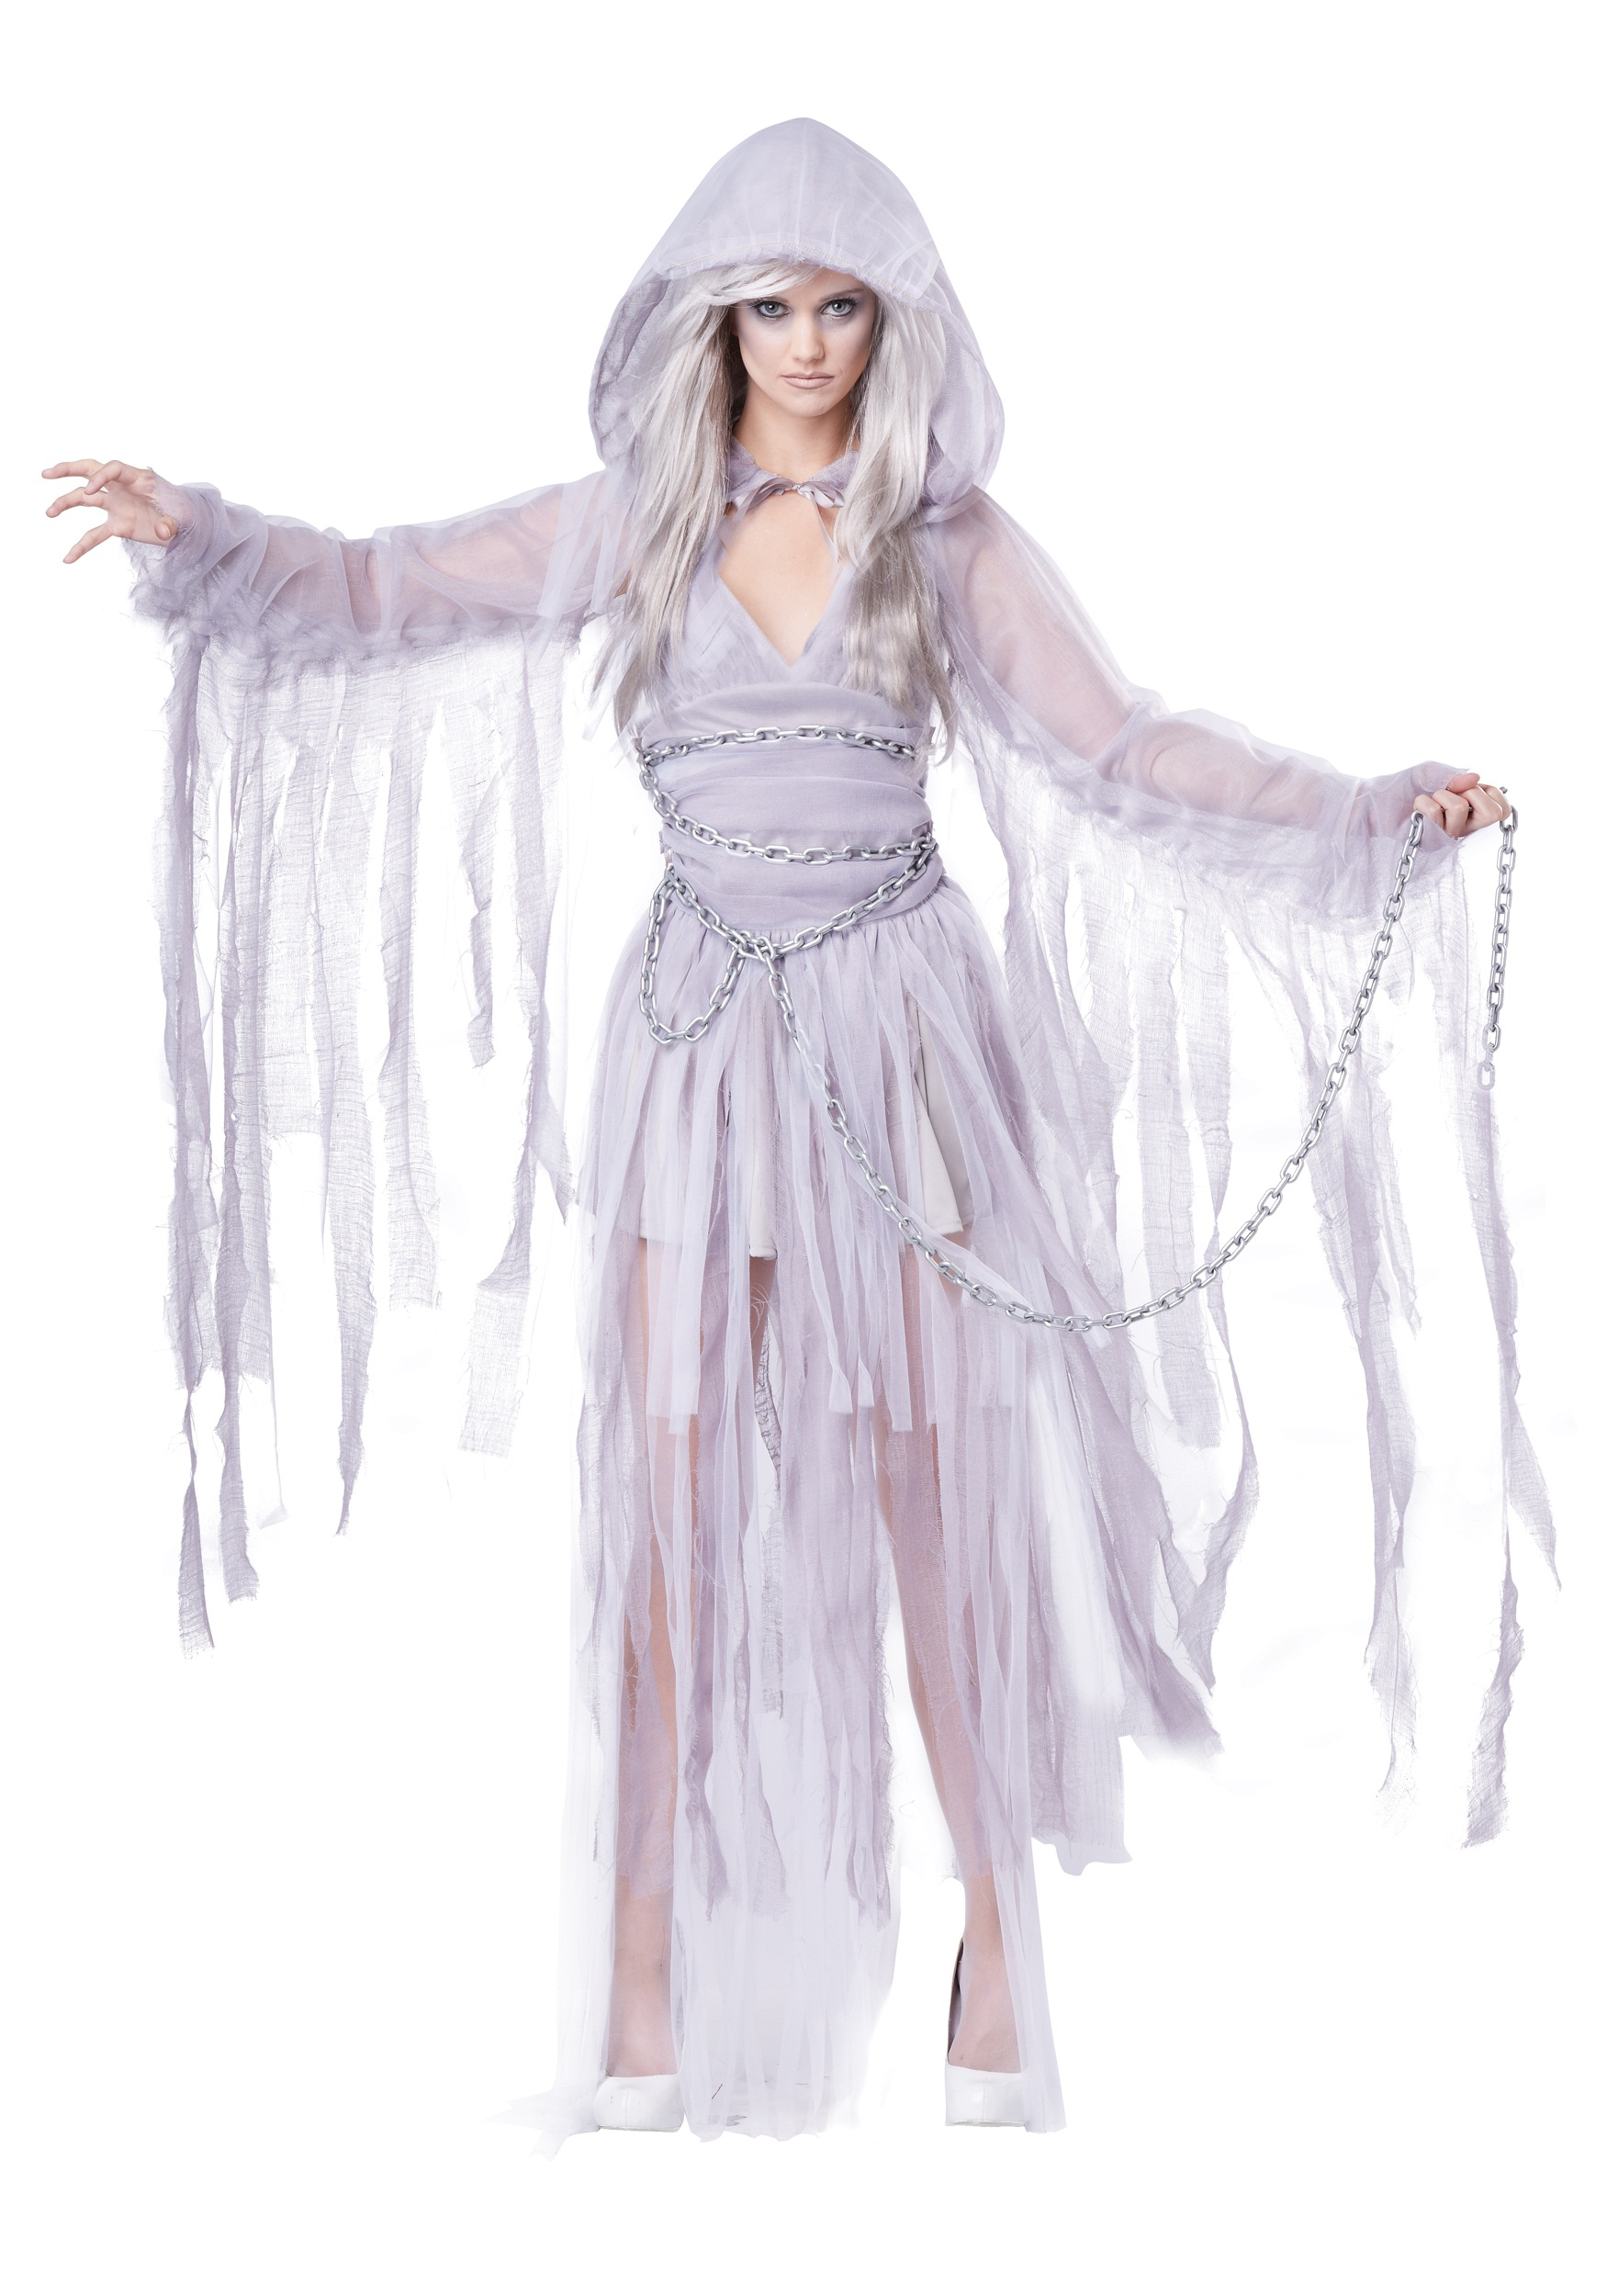 WOMEN'S HAUNTING BEAUTY COSTUME dress shrug with hood